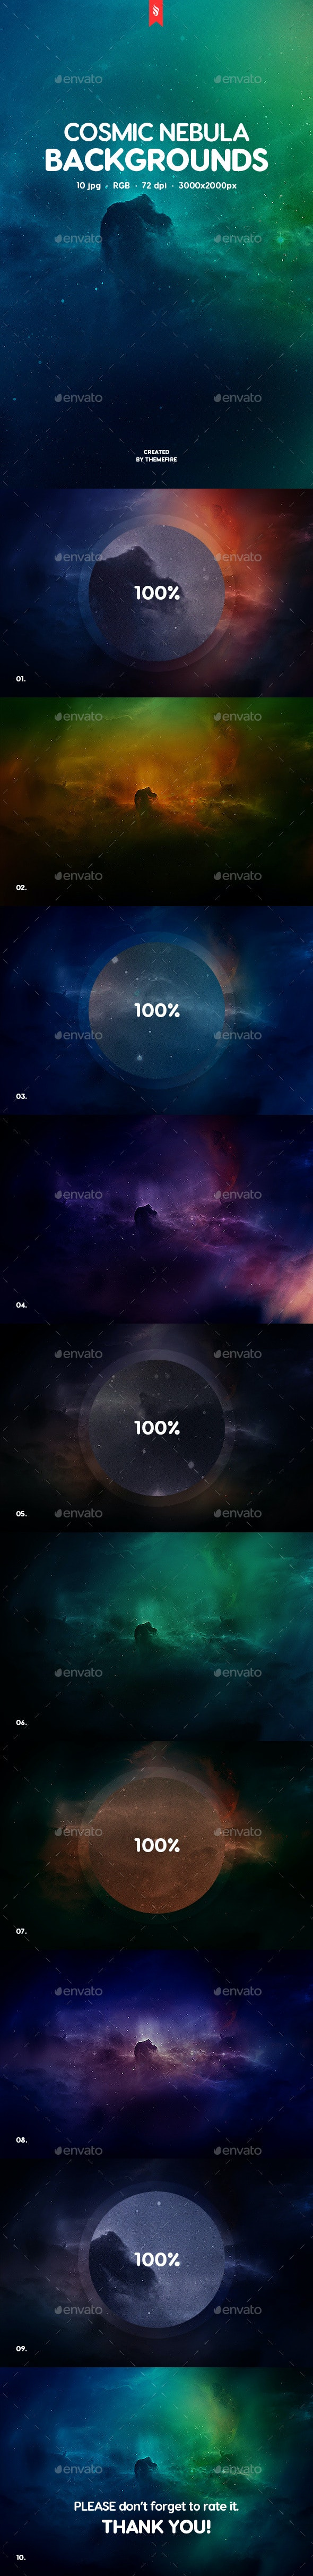 Cosmic Nebula Backgrounds - Abstract Backgrounds